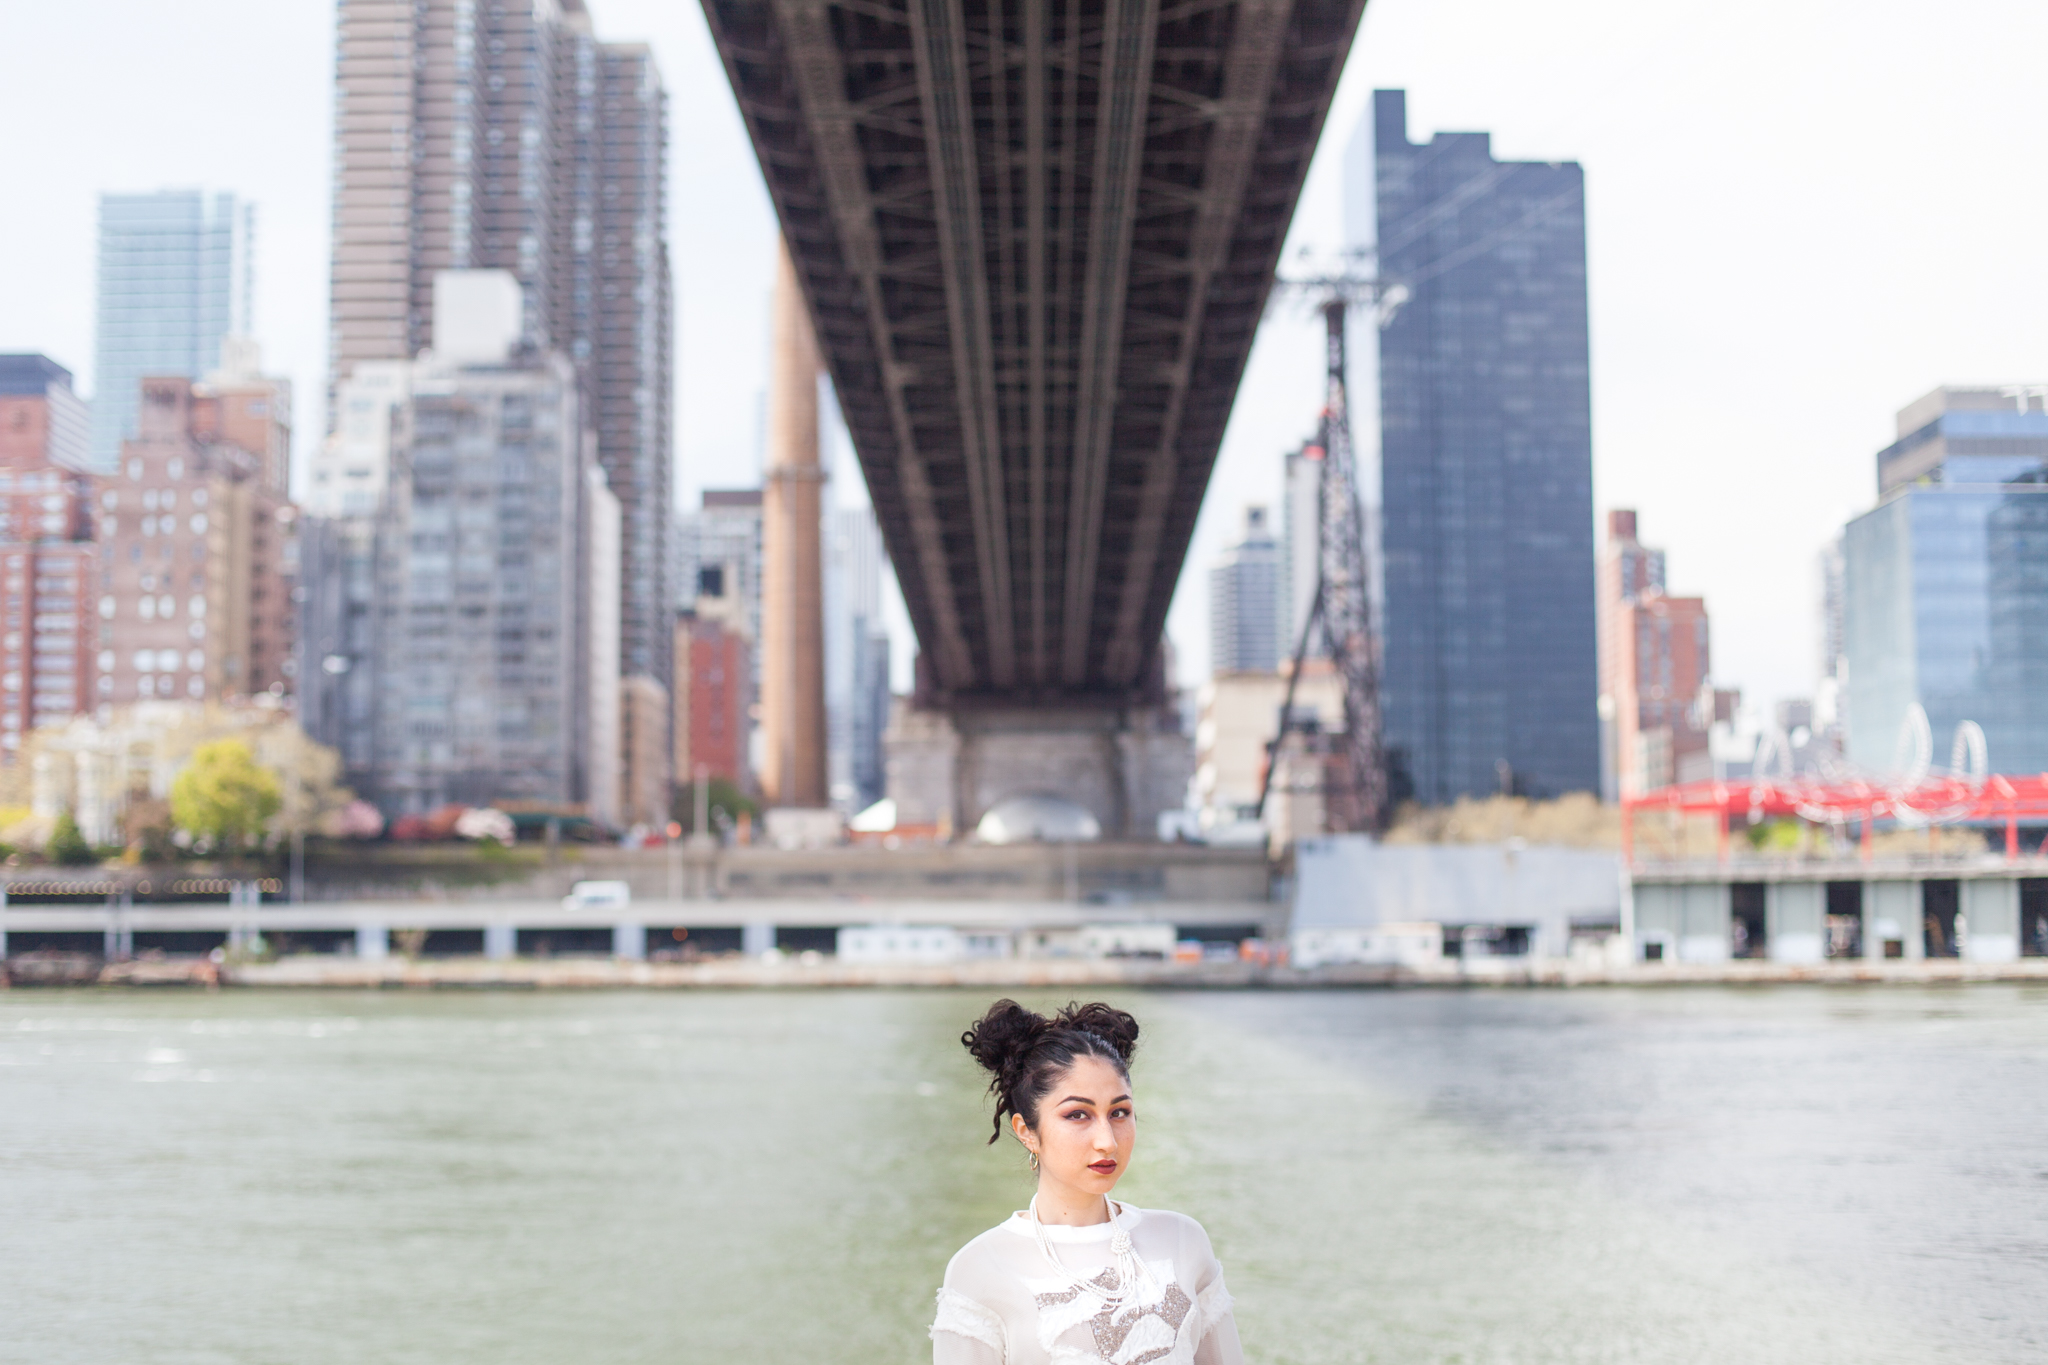 whomstudio_yurie-collins_roosevelt-island-nyc-0152_web.jpg